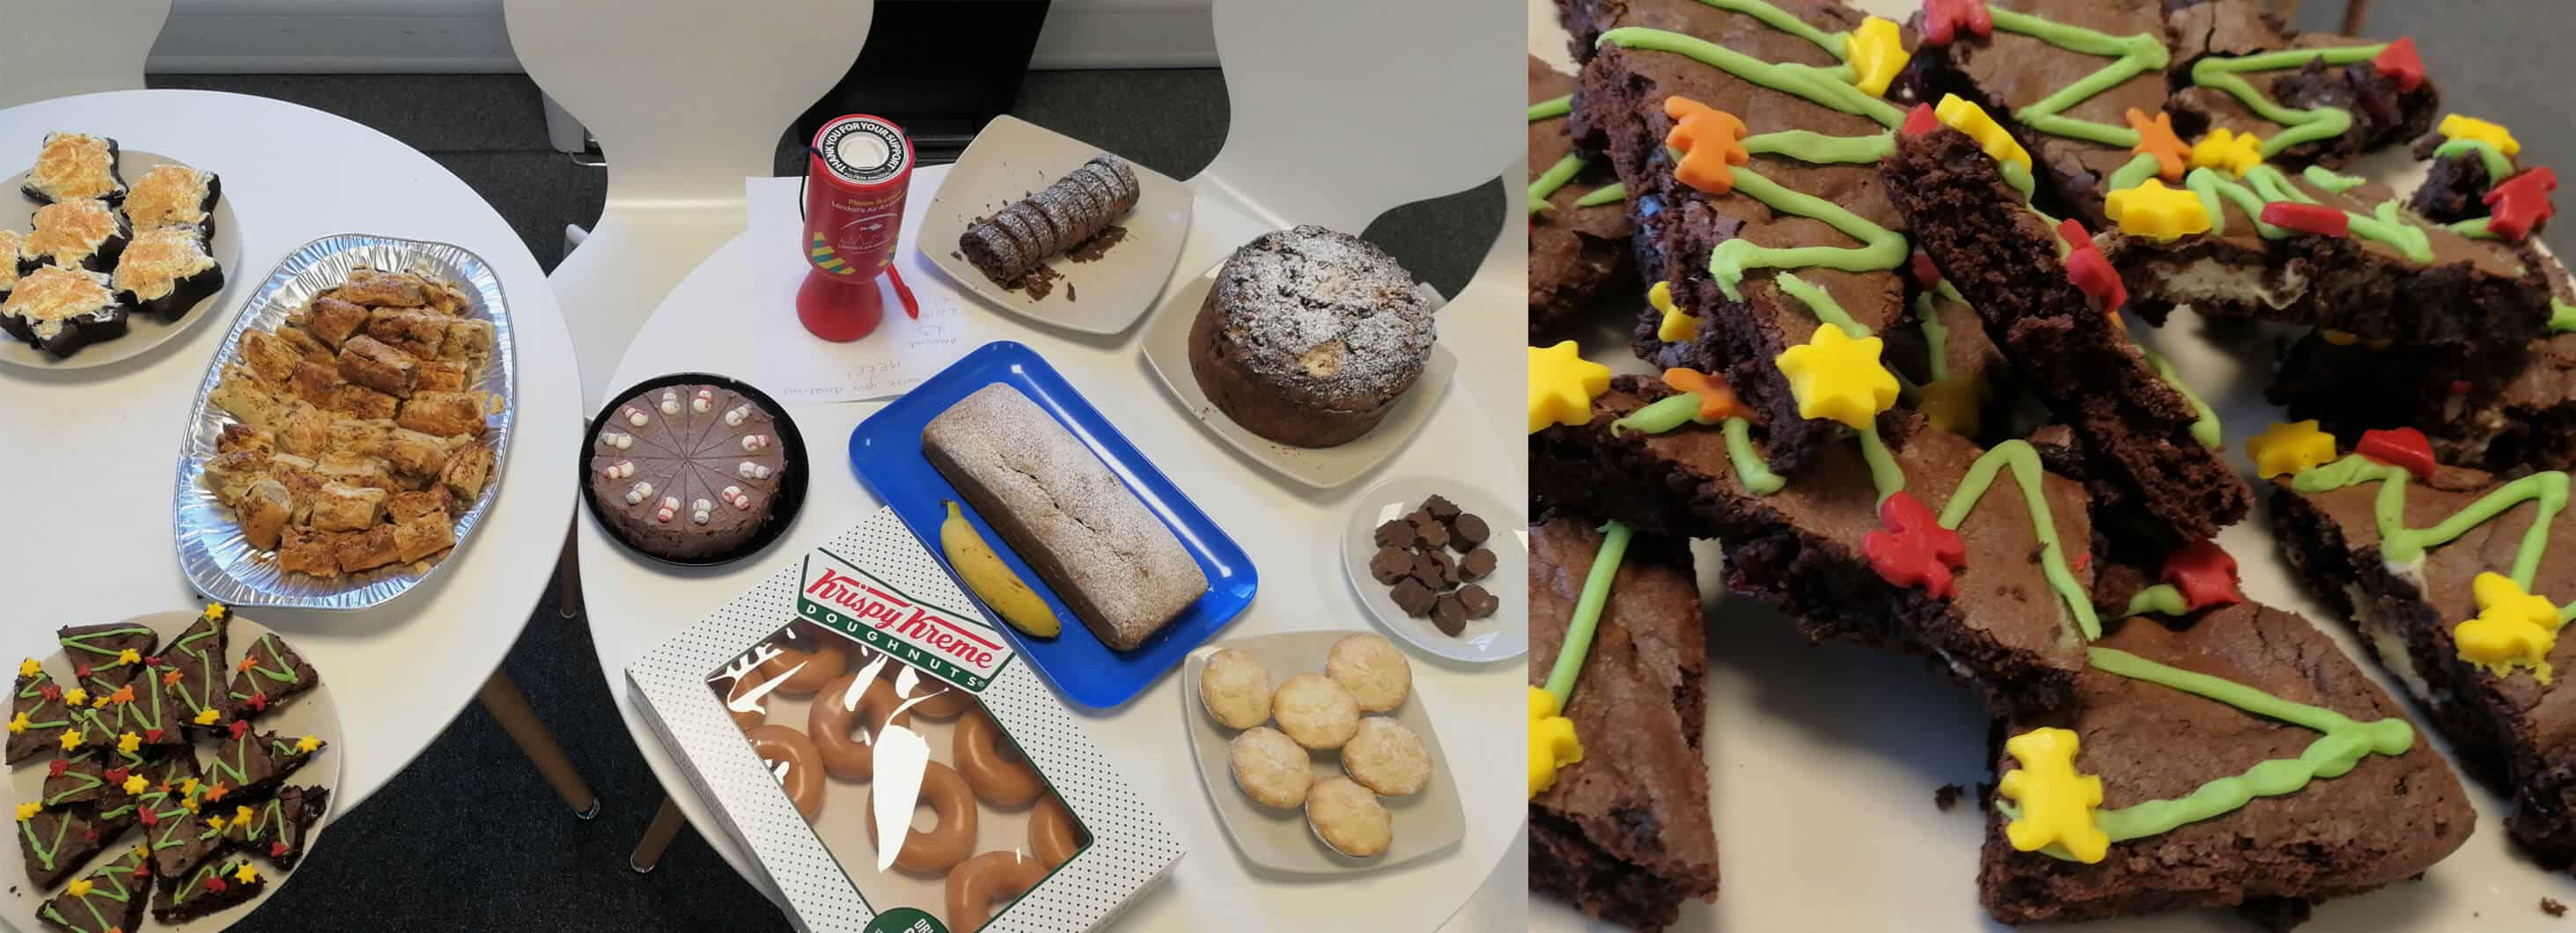 Secura's charity Christmas bake sale